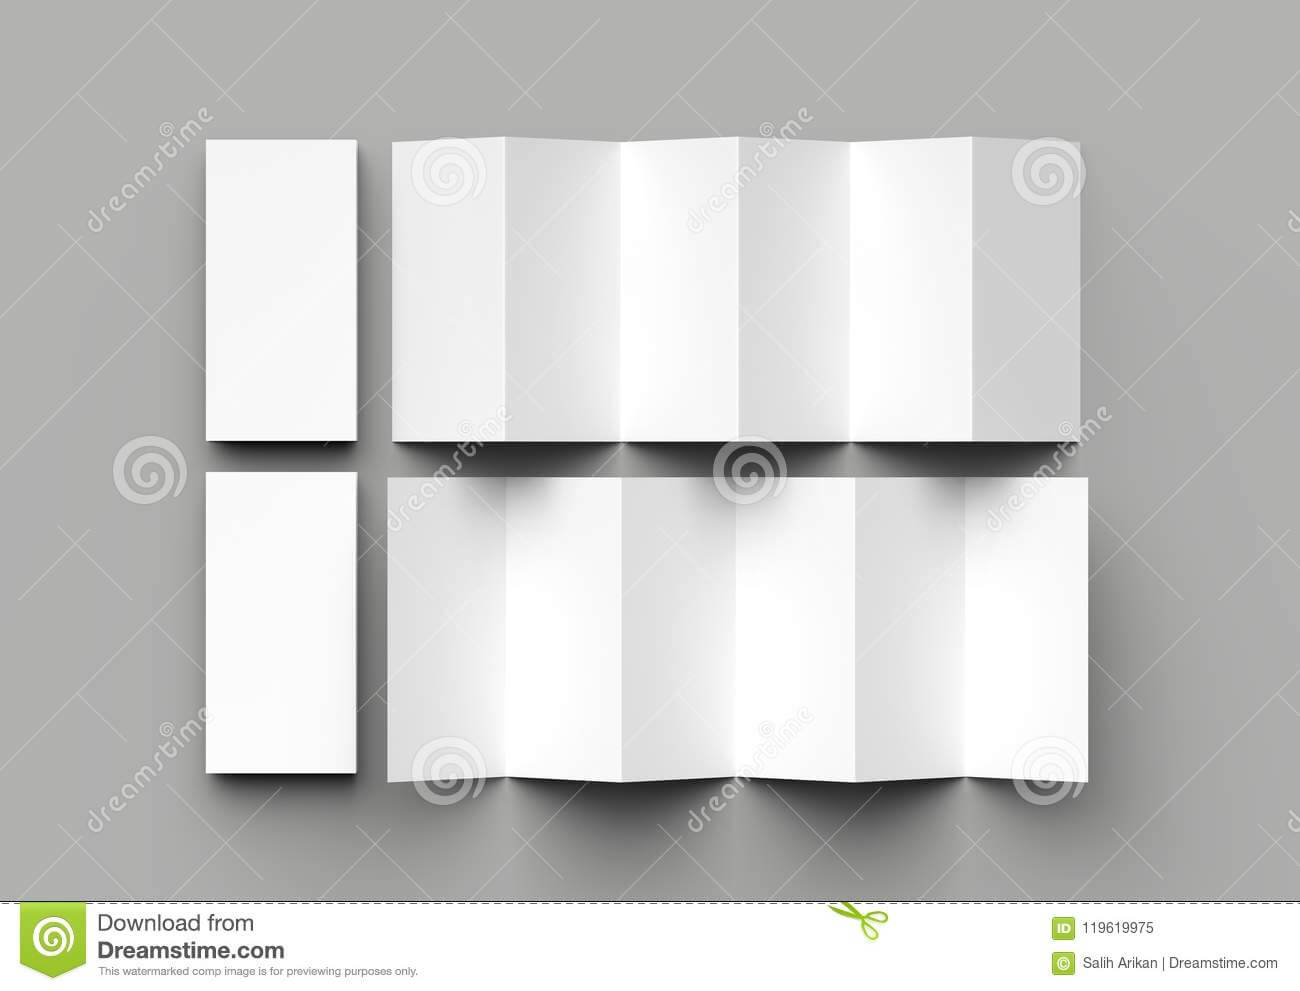 12 Page Leaflet, 6 Panel Accordion Fold – Z Fold Vertical Throughout 12 Page Brochure Template